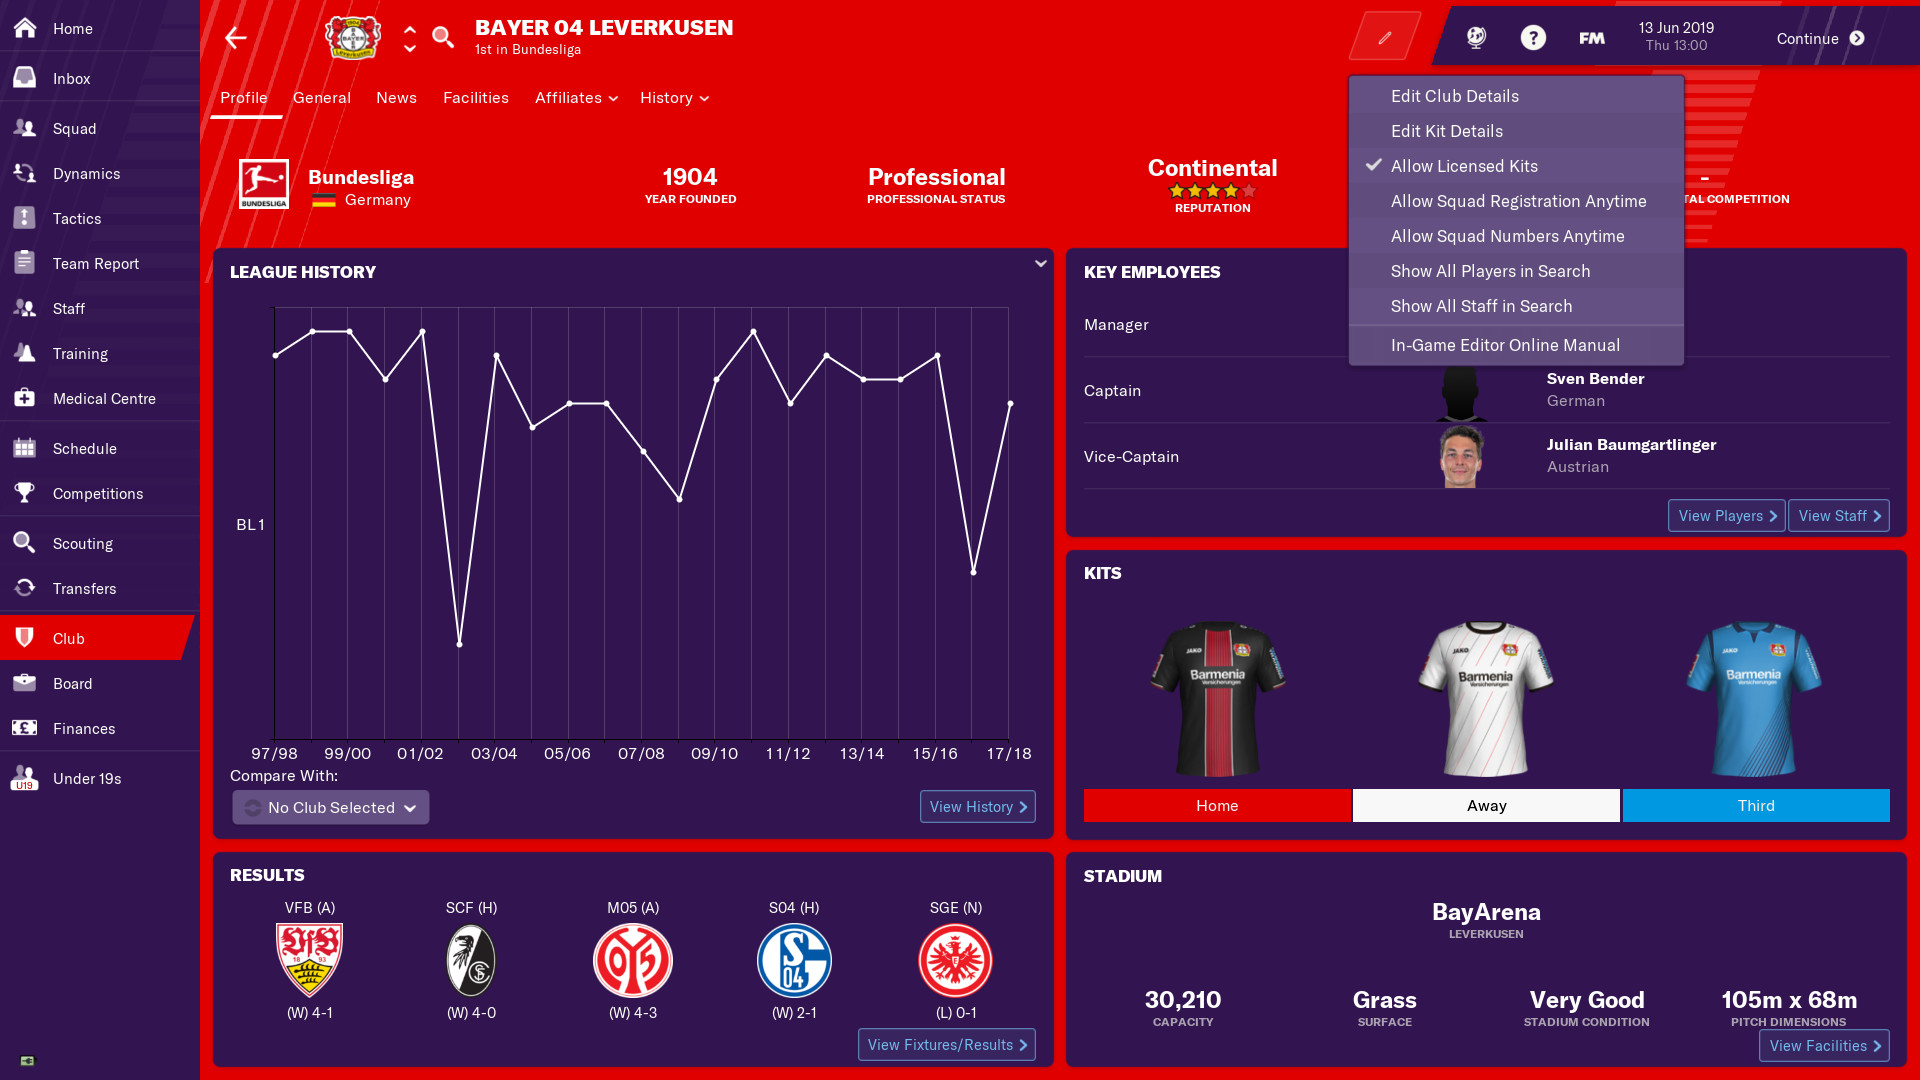 Football Manager 2019 In Game Editor